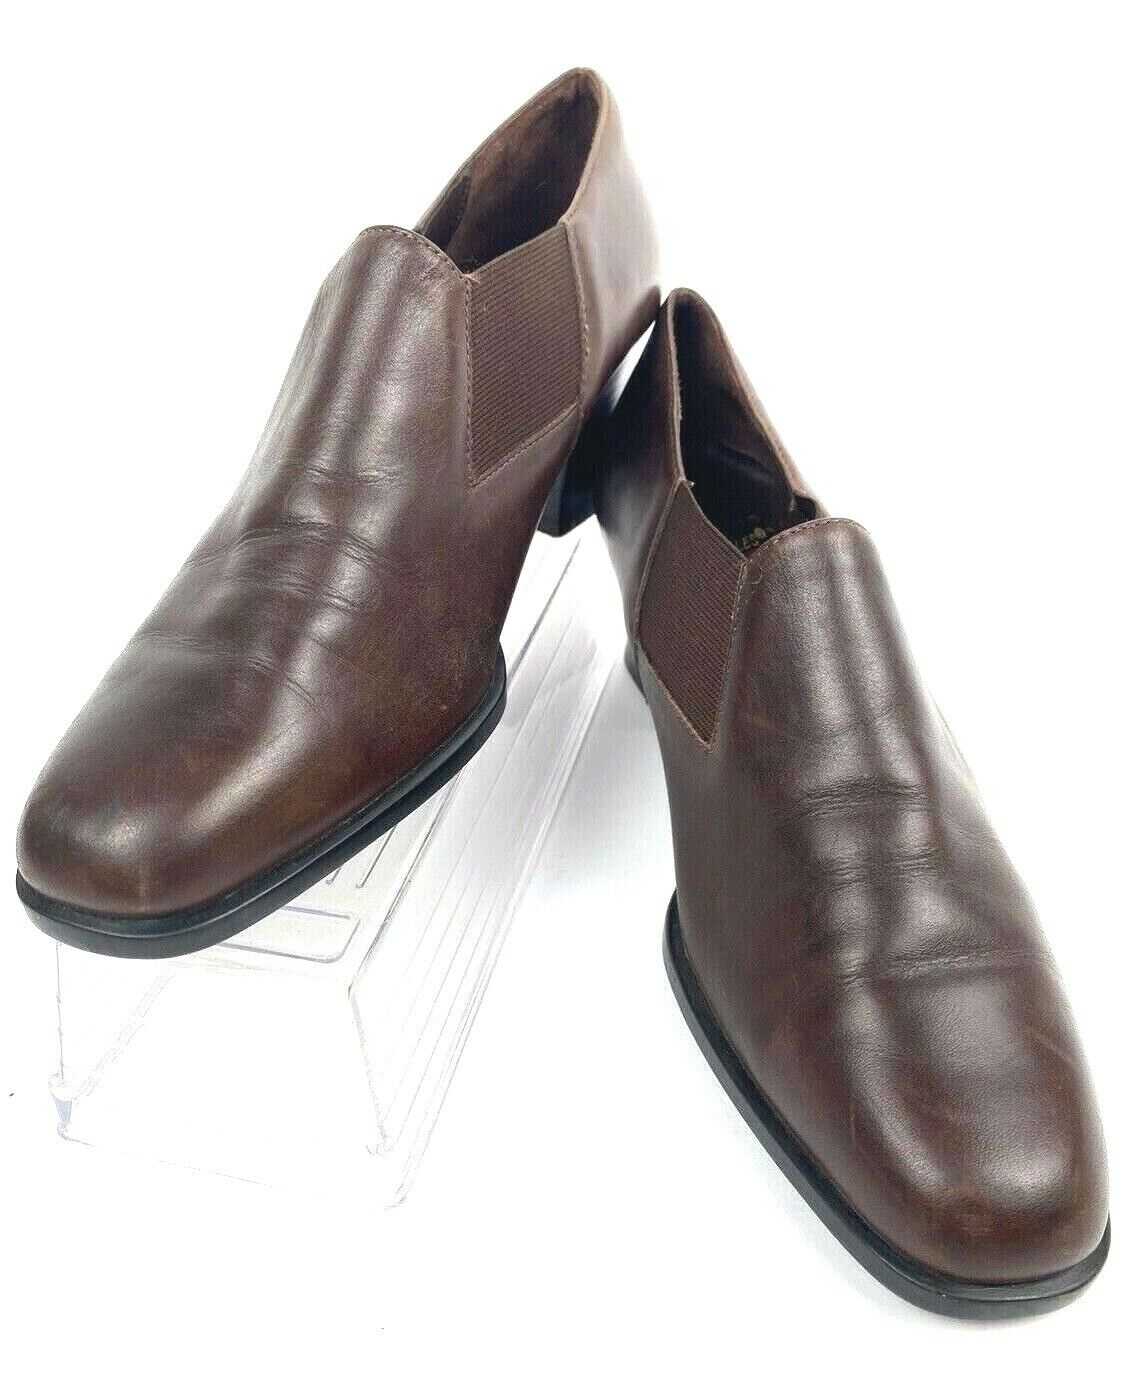 Aerosoles Shoes Heel a Copter Brown Leather Loafers Booties Shoes Womens Sz 7.5B